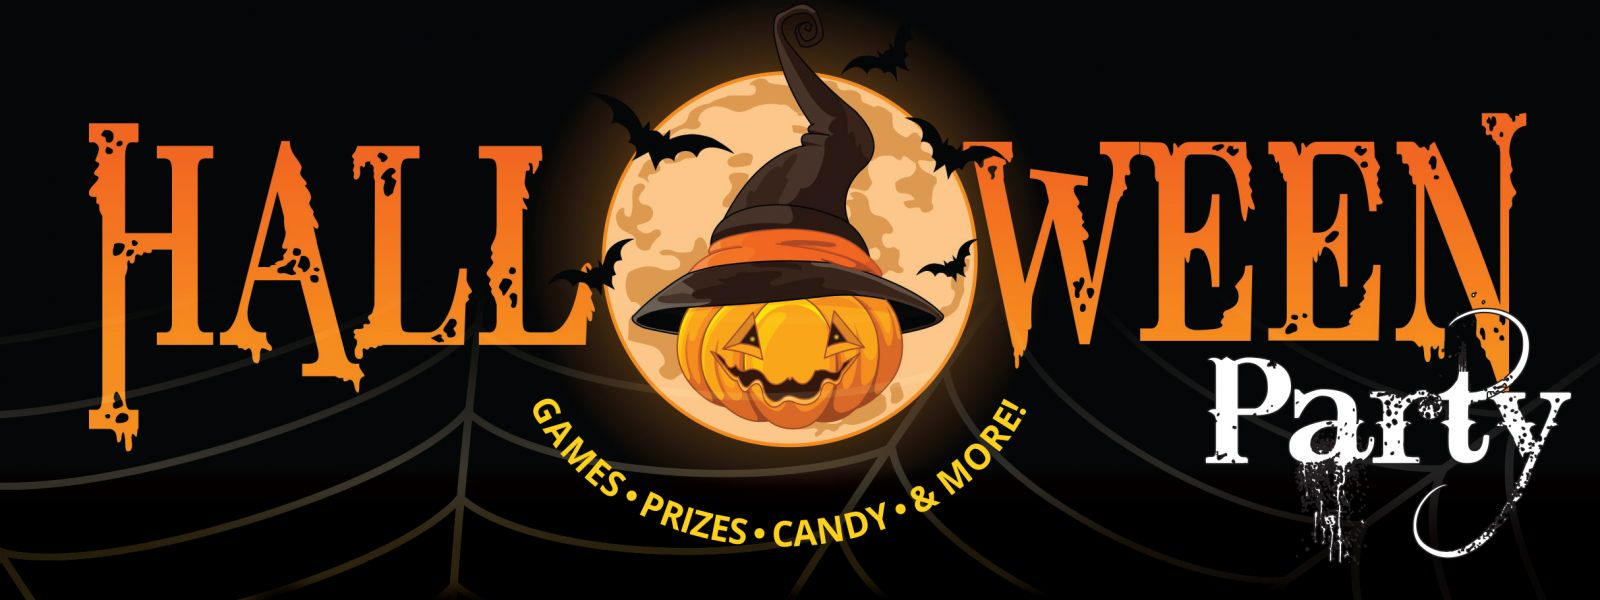 halloween party images - Halloween Party Wallpaper